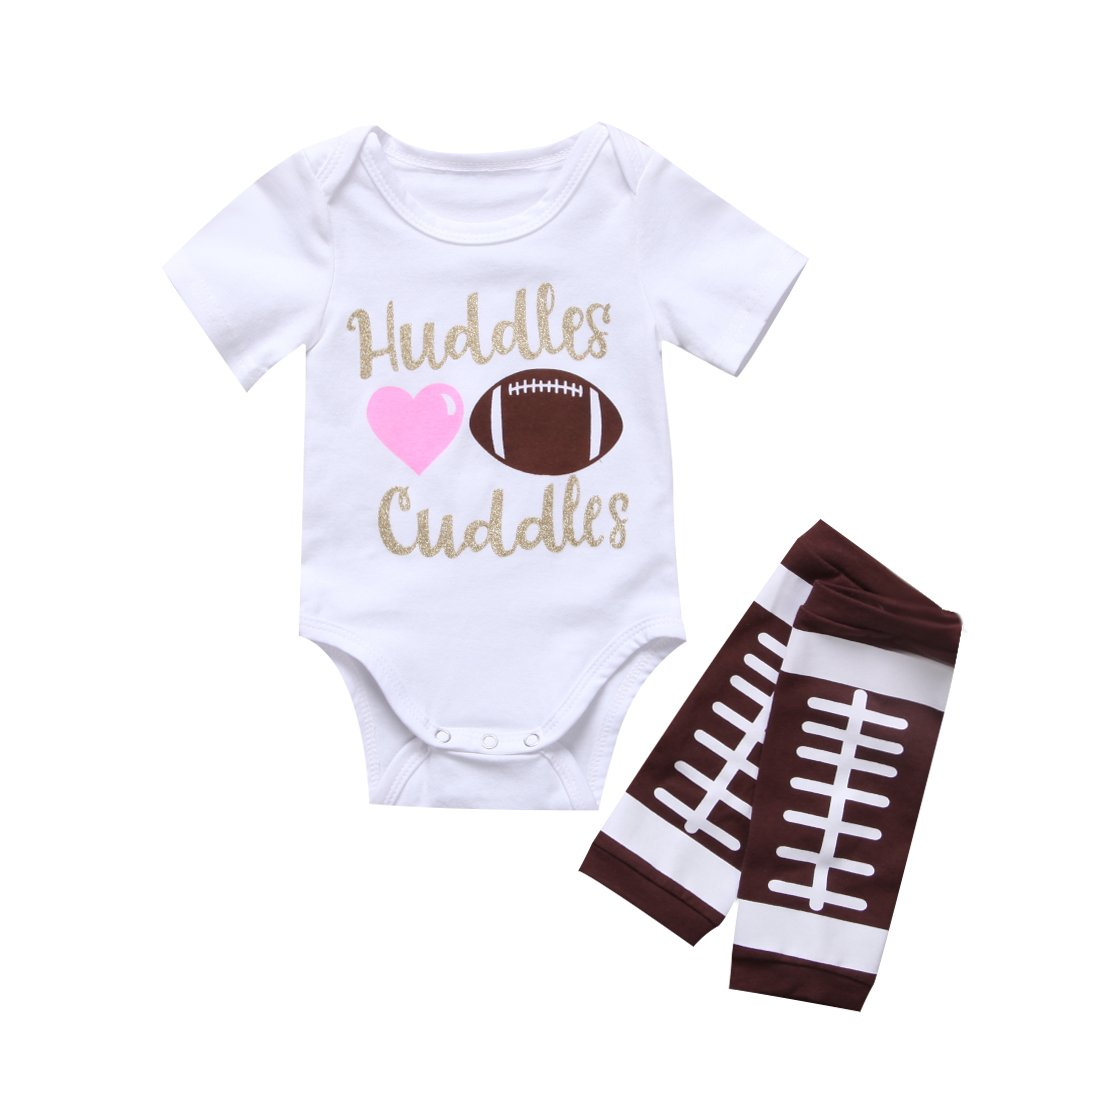 Newborn Baby Boy Girl Football Letter Romper Leg Warmers Outfit Clothes Set